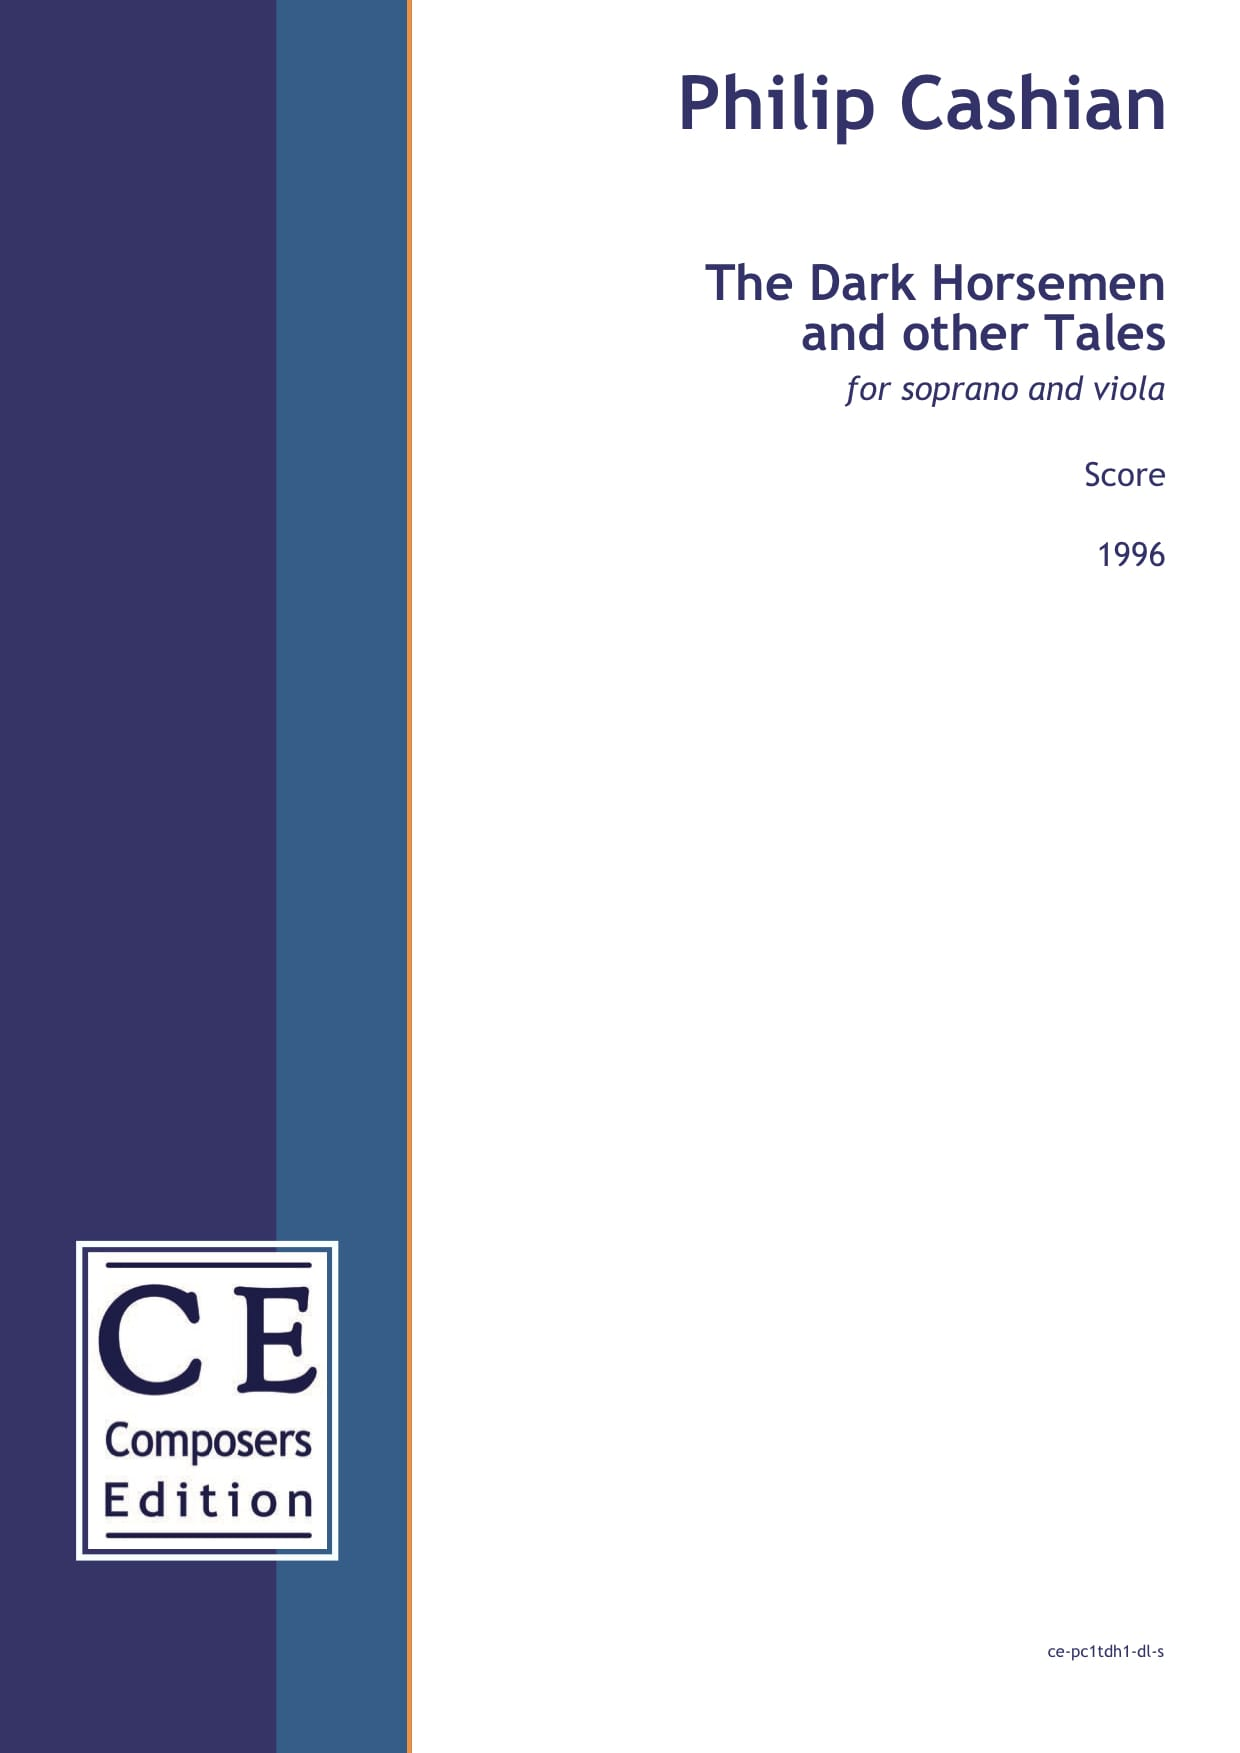 Philip Cashian: The Dark Horsemen and other Tales for soprano and viola